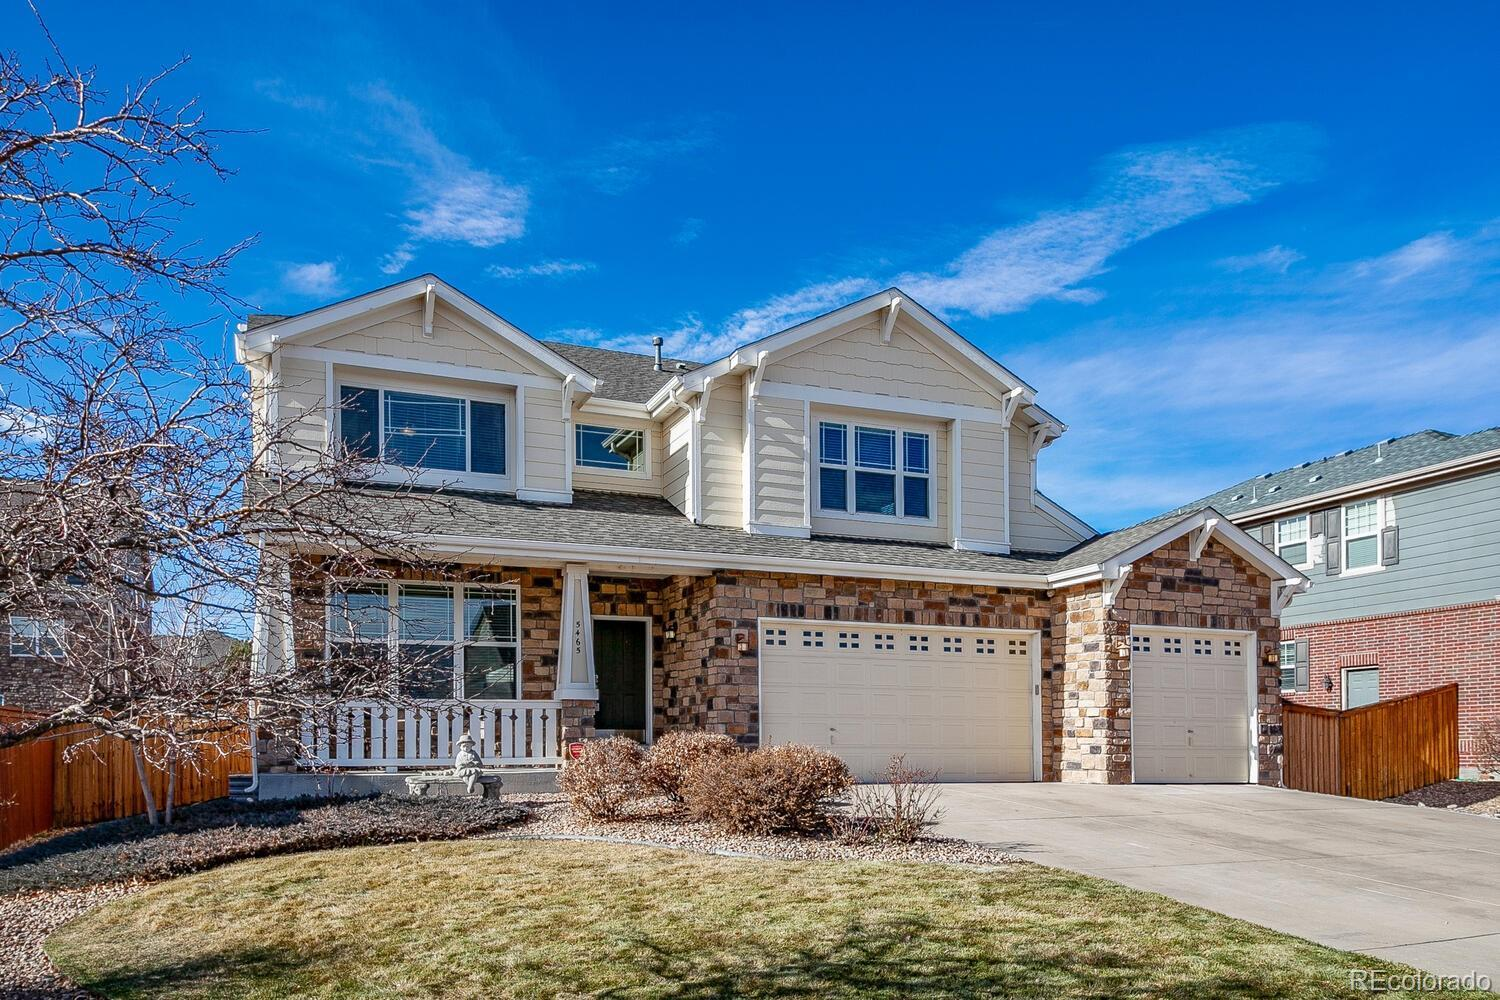 5465 S Flat Rock Way, Aurora, CO 80016 - #: 6576584